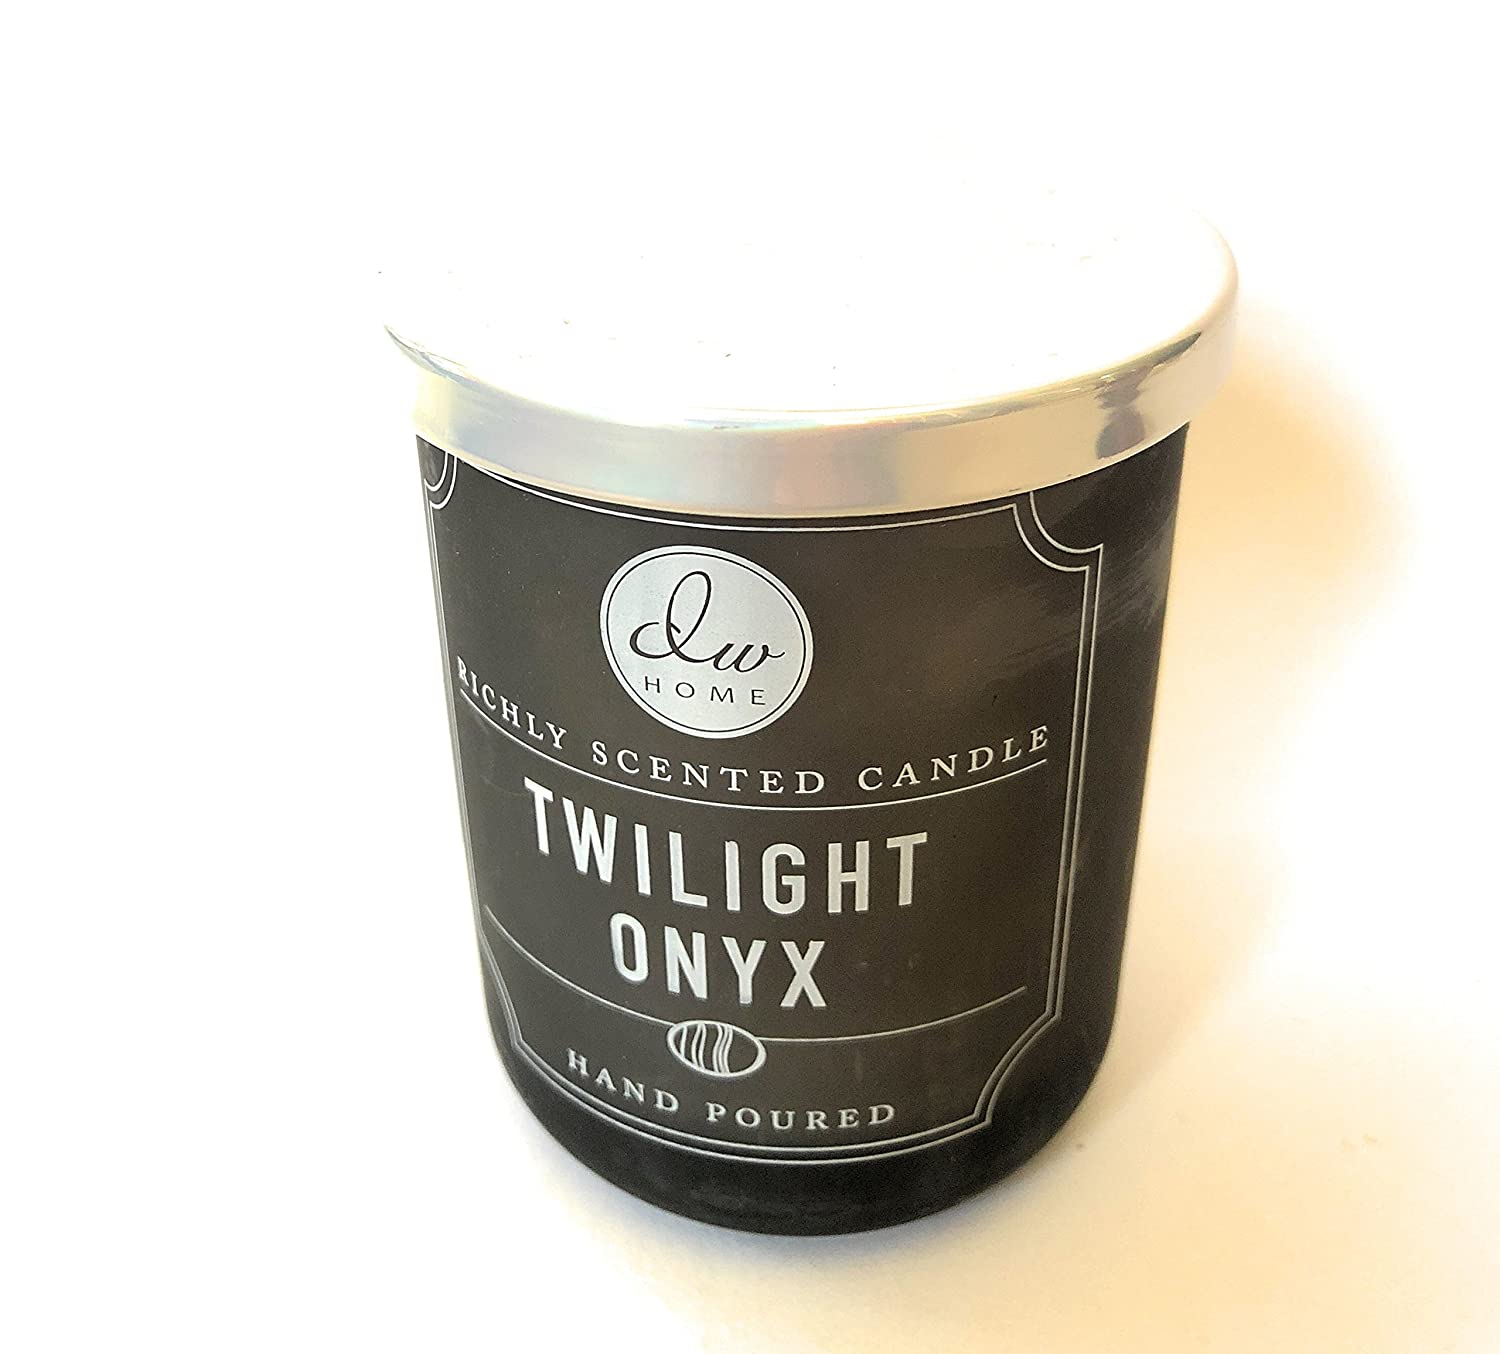 DW Home Twilight Onyx Hand Poured Candle 3.8 Oz